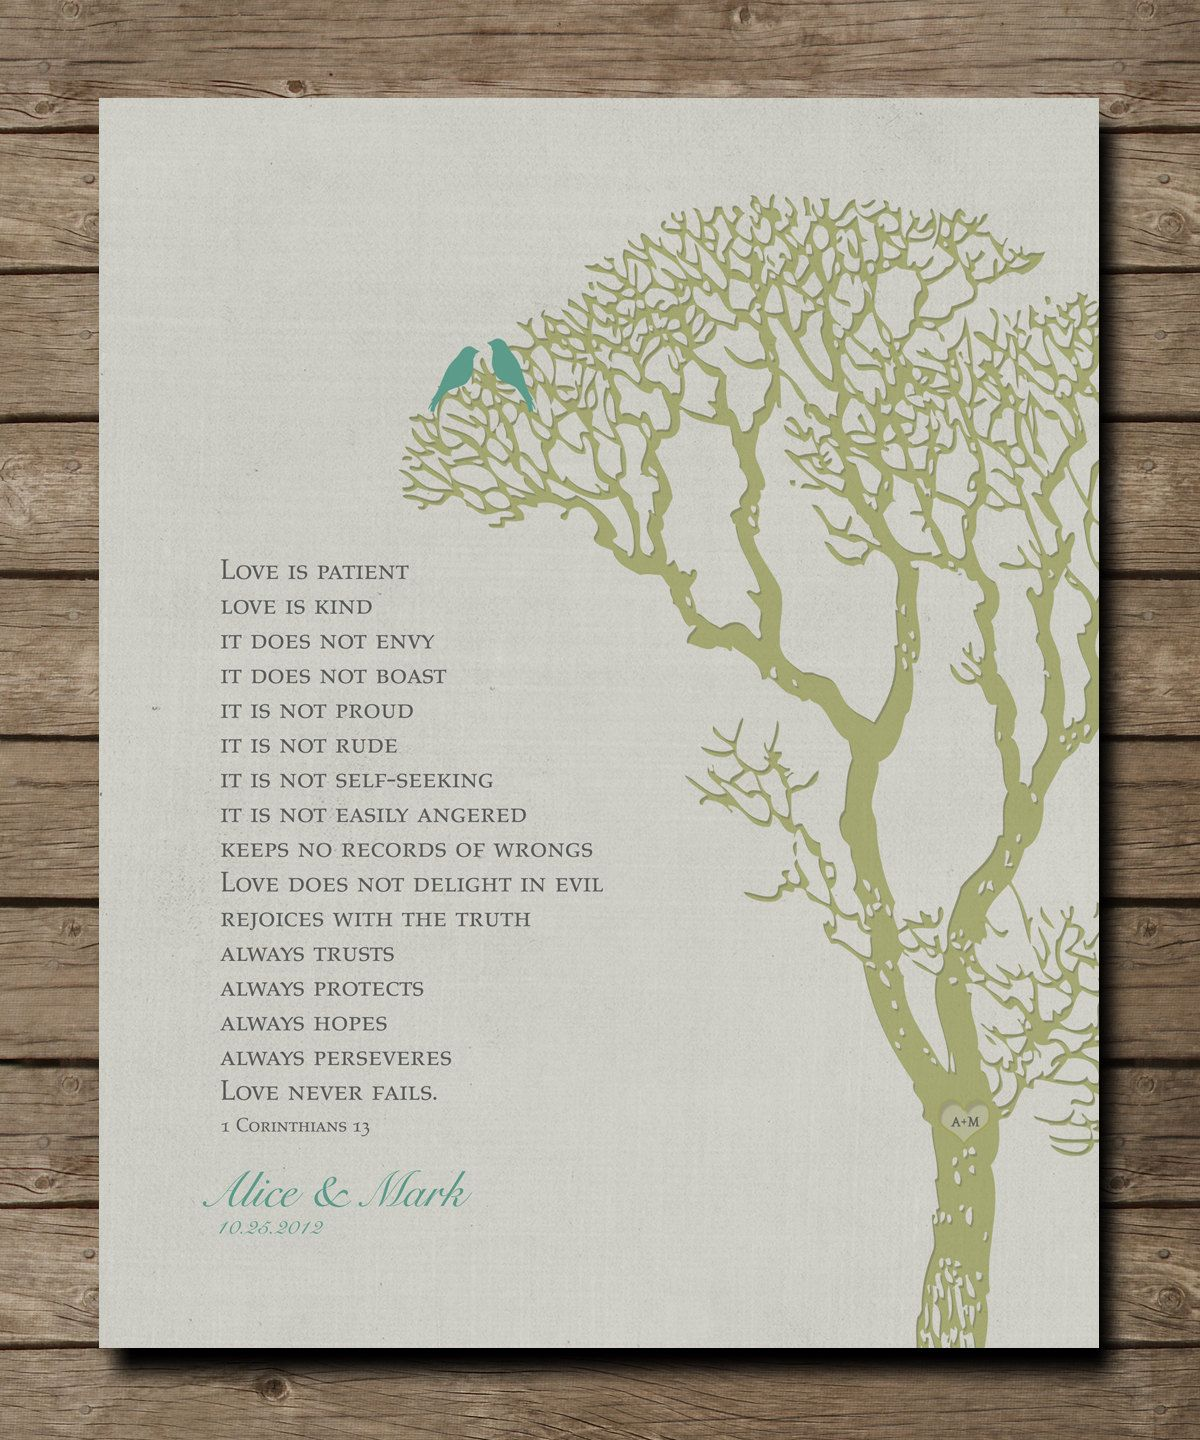 Personalized Wedding Tree Anniversary Gift Print 1 Corinthians 13 Love is Patient Bible Verse personalized with NAMES 8 x 10